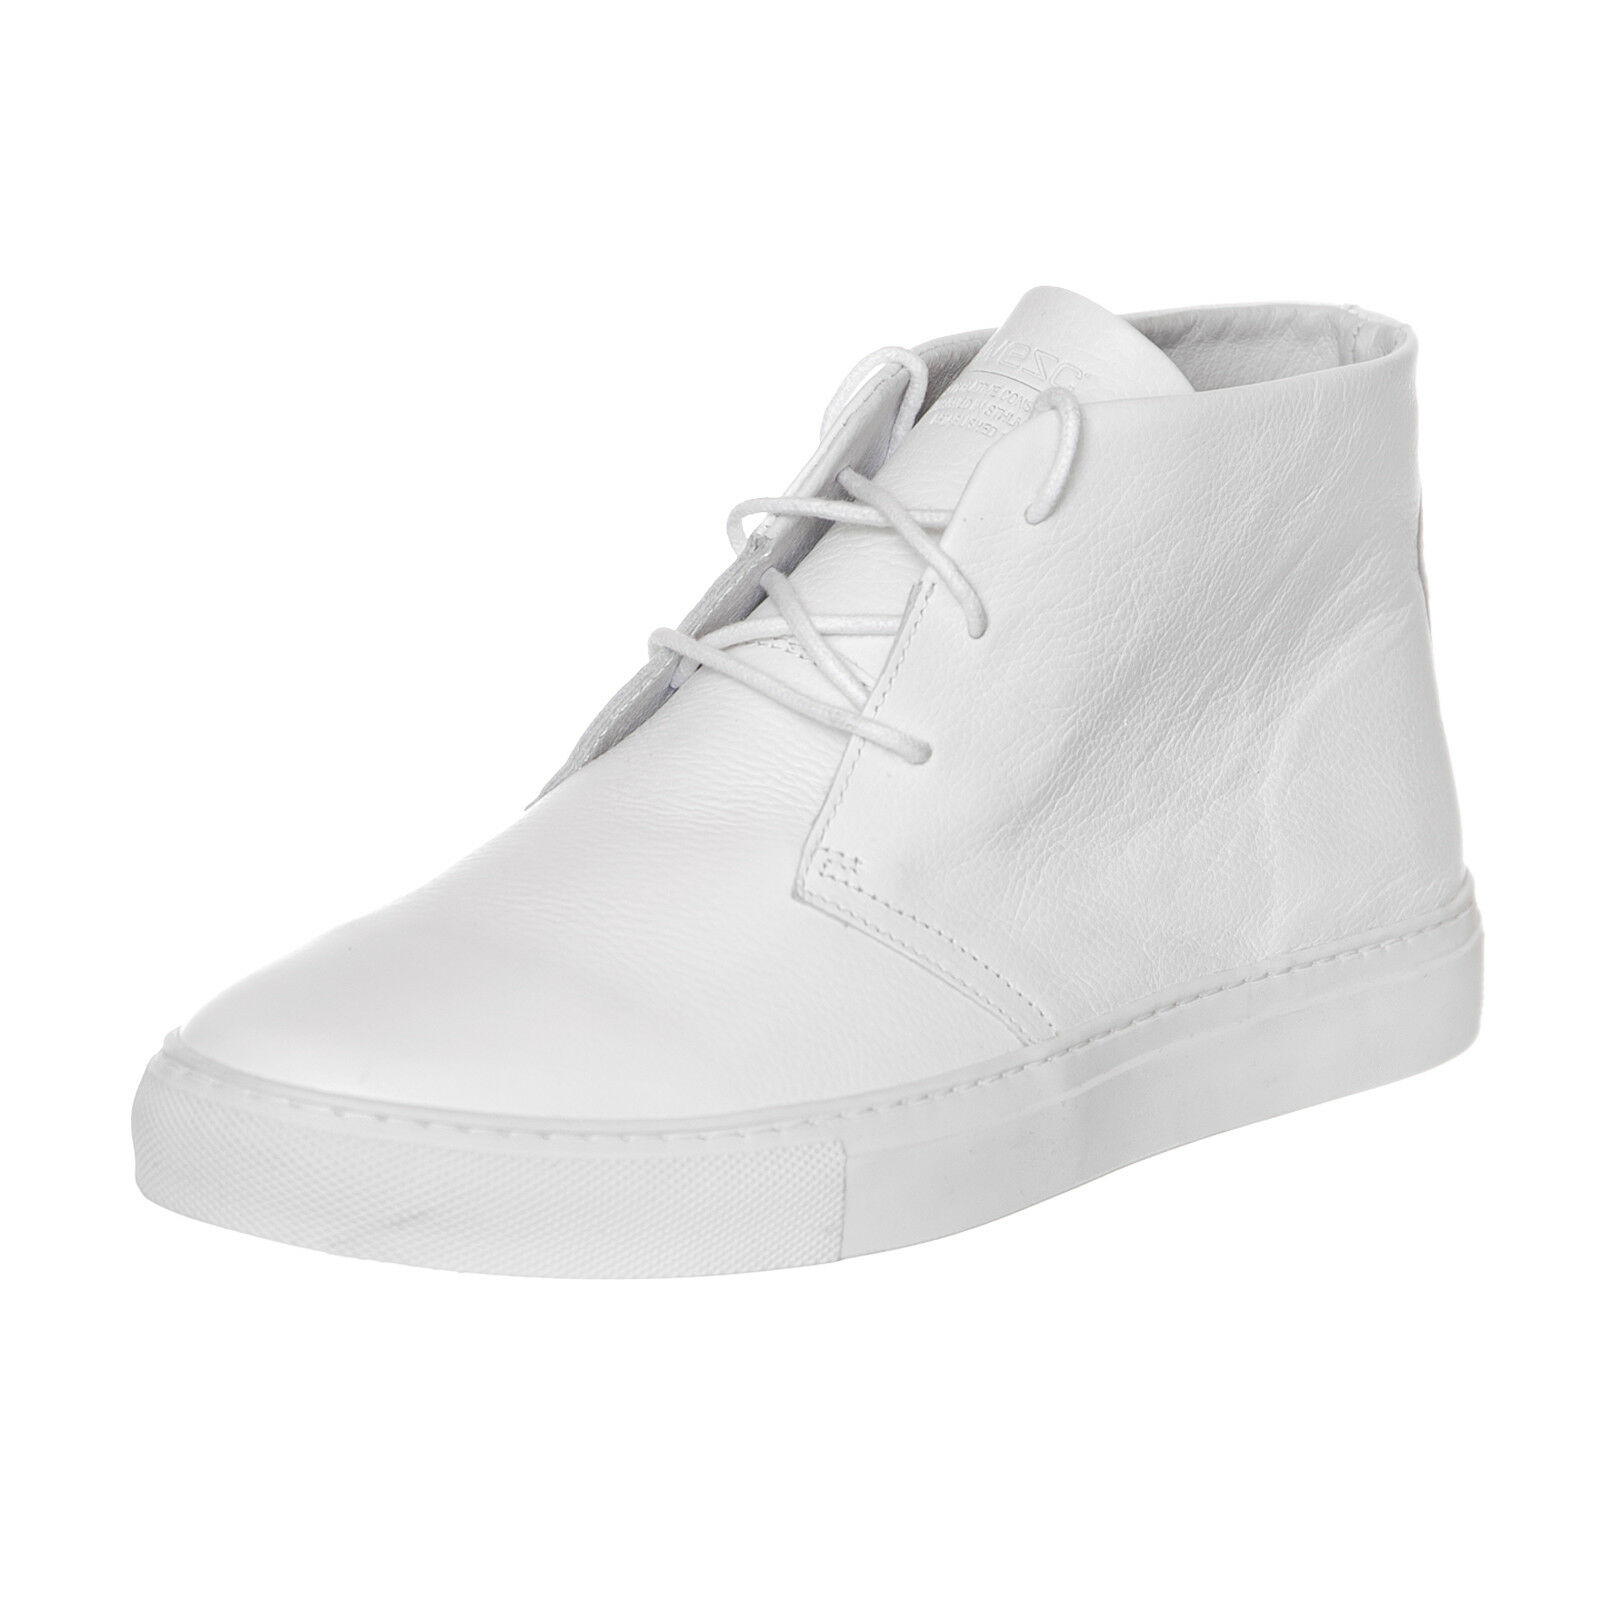 Wesc Sneakers Casual Chukka Mid Top White Bianco